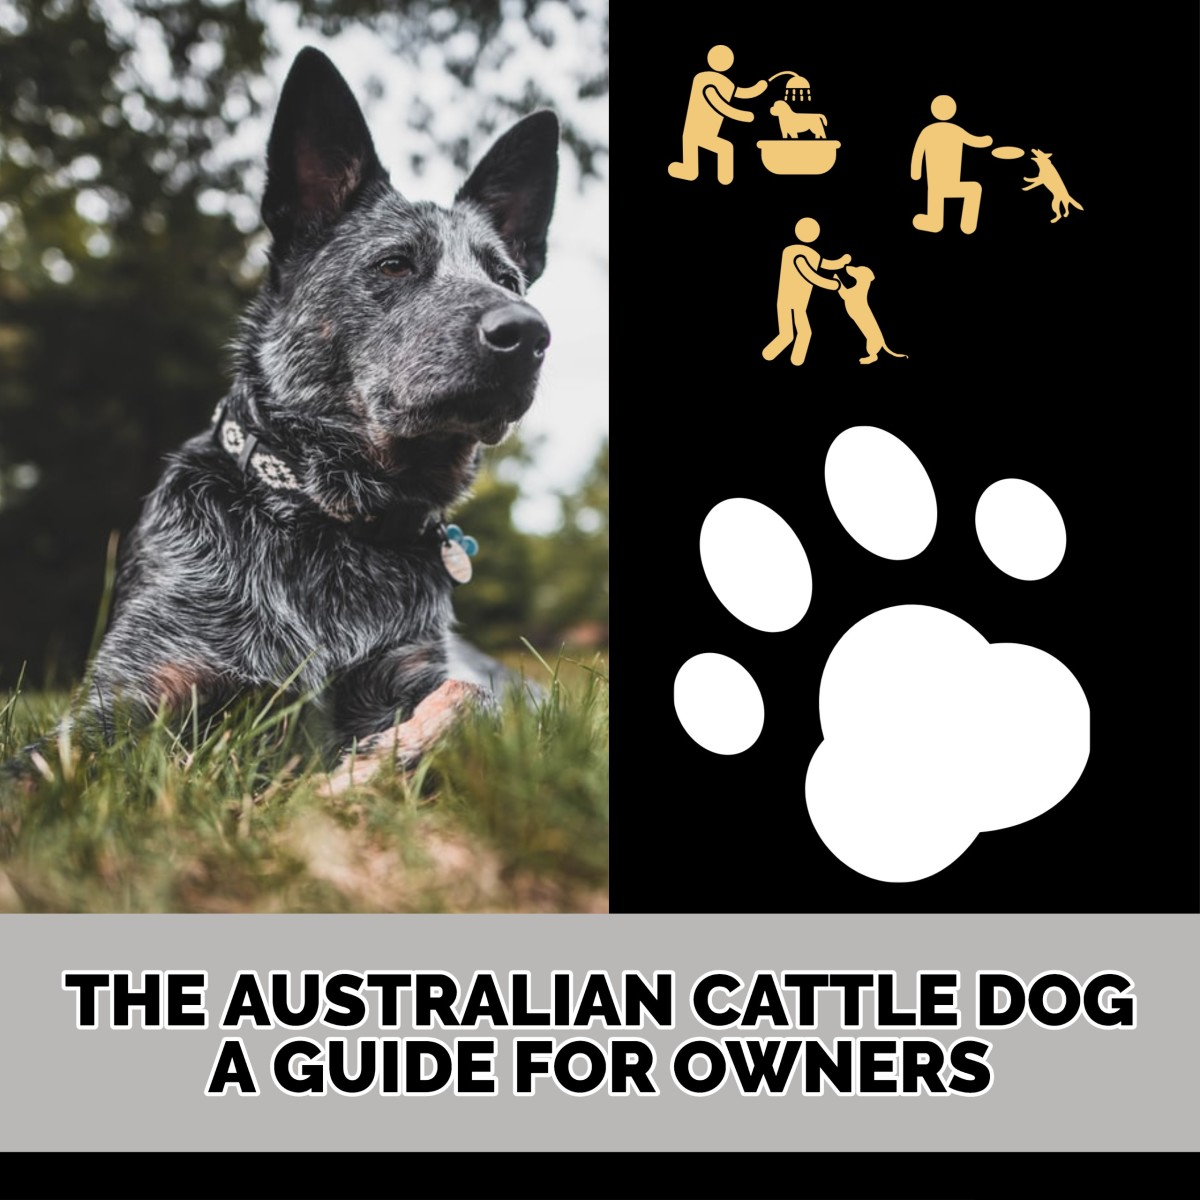 The Australian Cattle Dog: A Guide for Owners.